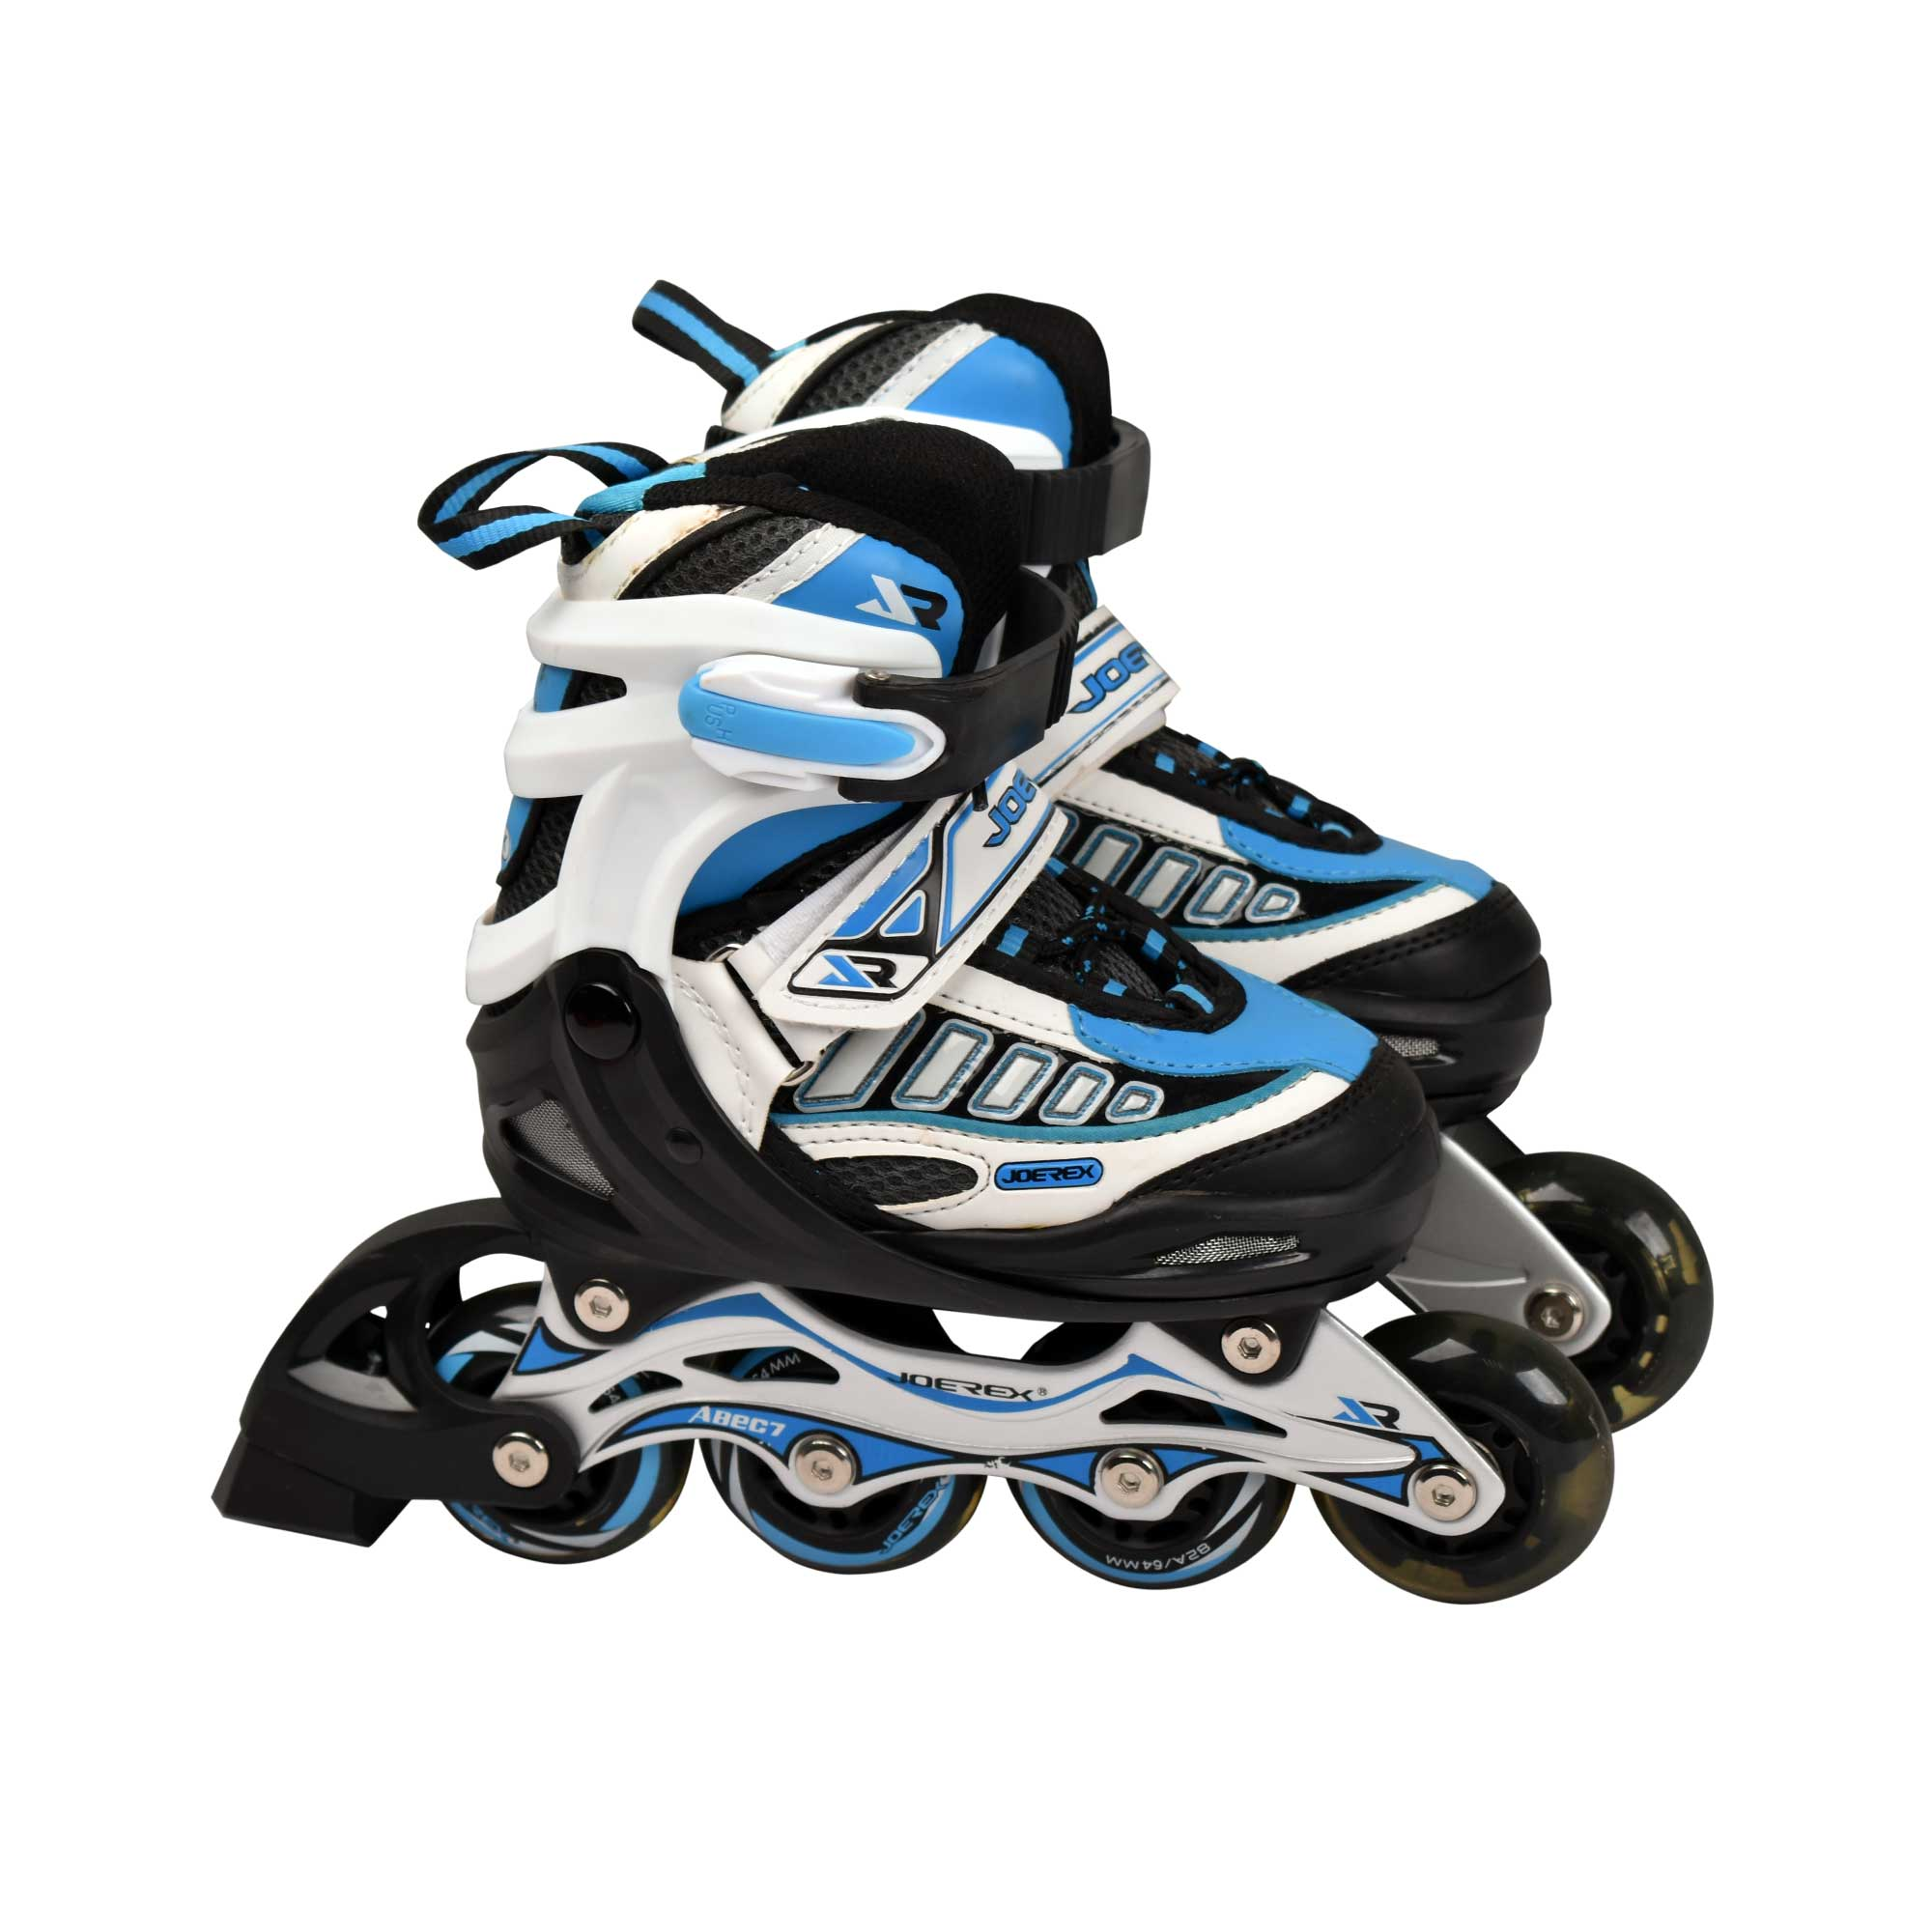 JOEREX JRO09700 INLINE ROLLER SKATE SHOES SKATING HELMET & PROTECTION SET